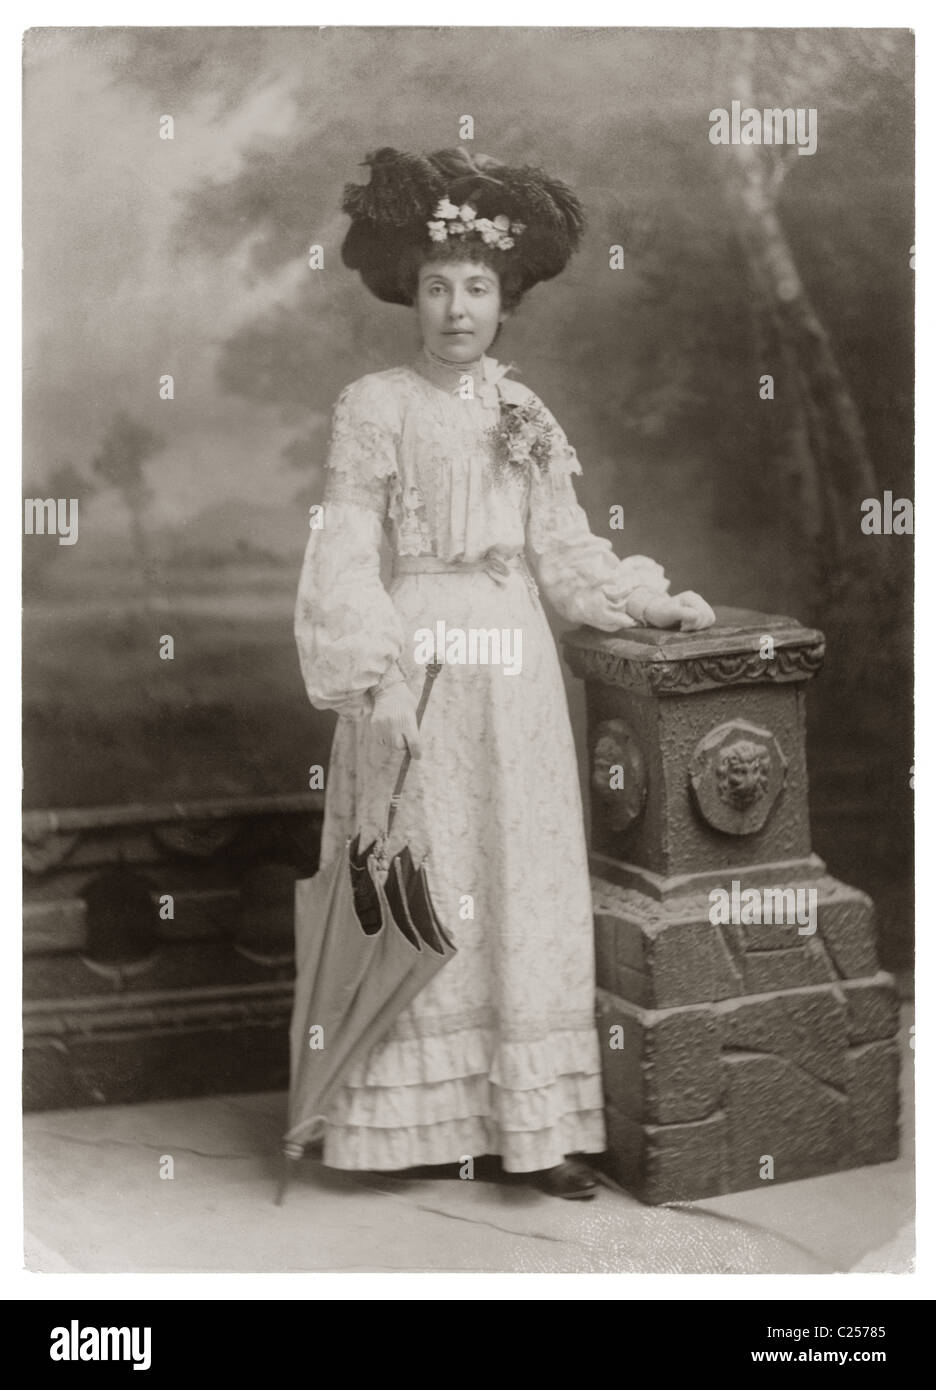 06b6f61a24d5a Studio portrait of fashionable, pretty young lady wearing a summer outfit,  feather hat, holding a parasol, in the Edwardian period, early 1900's  period ...